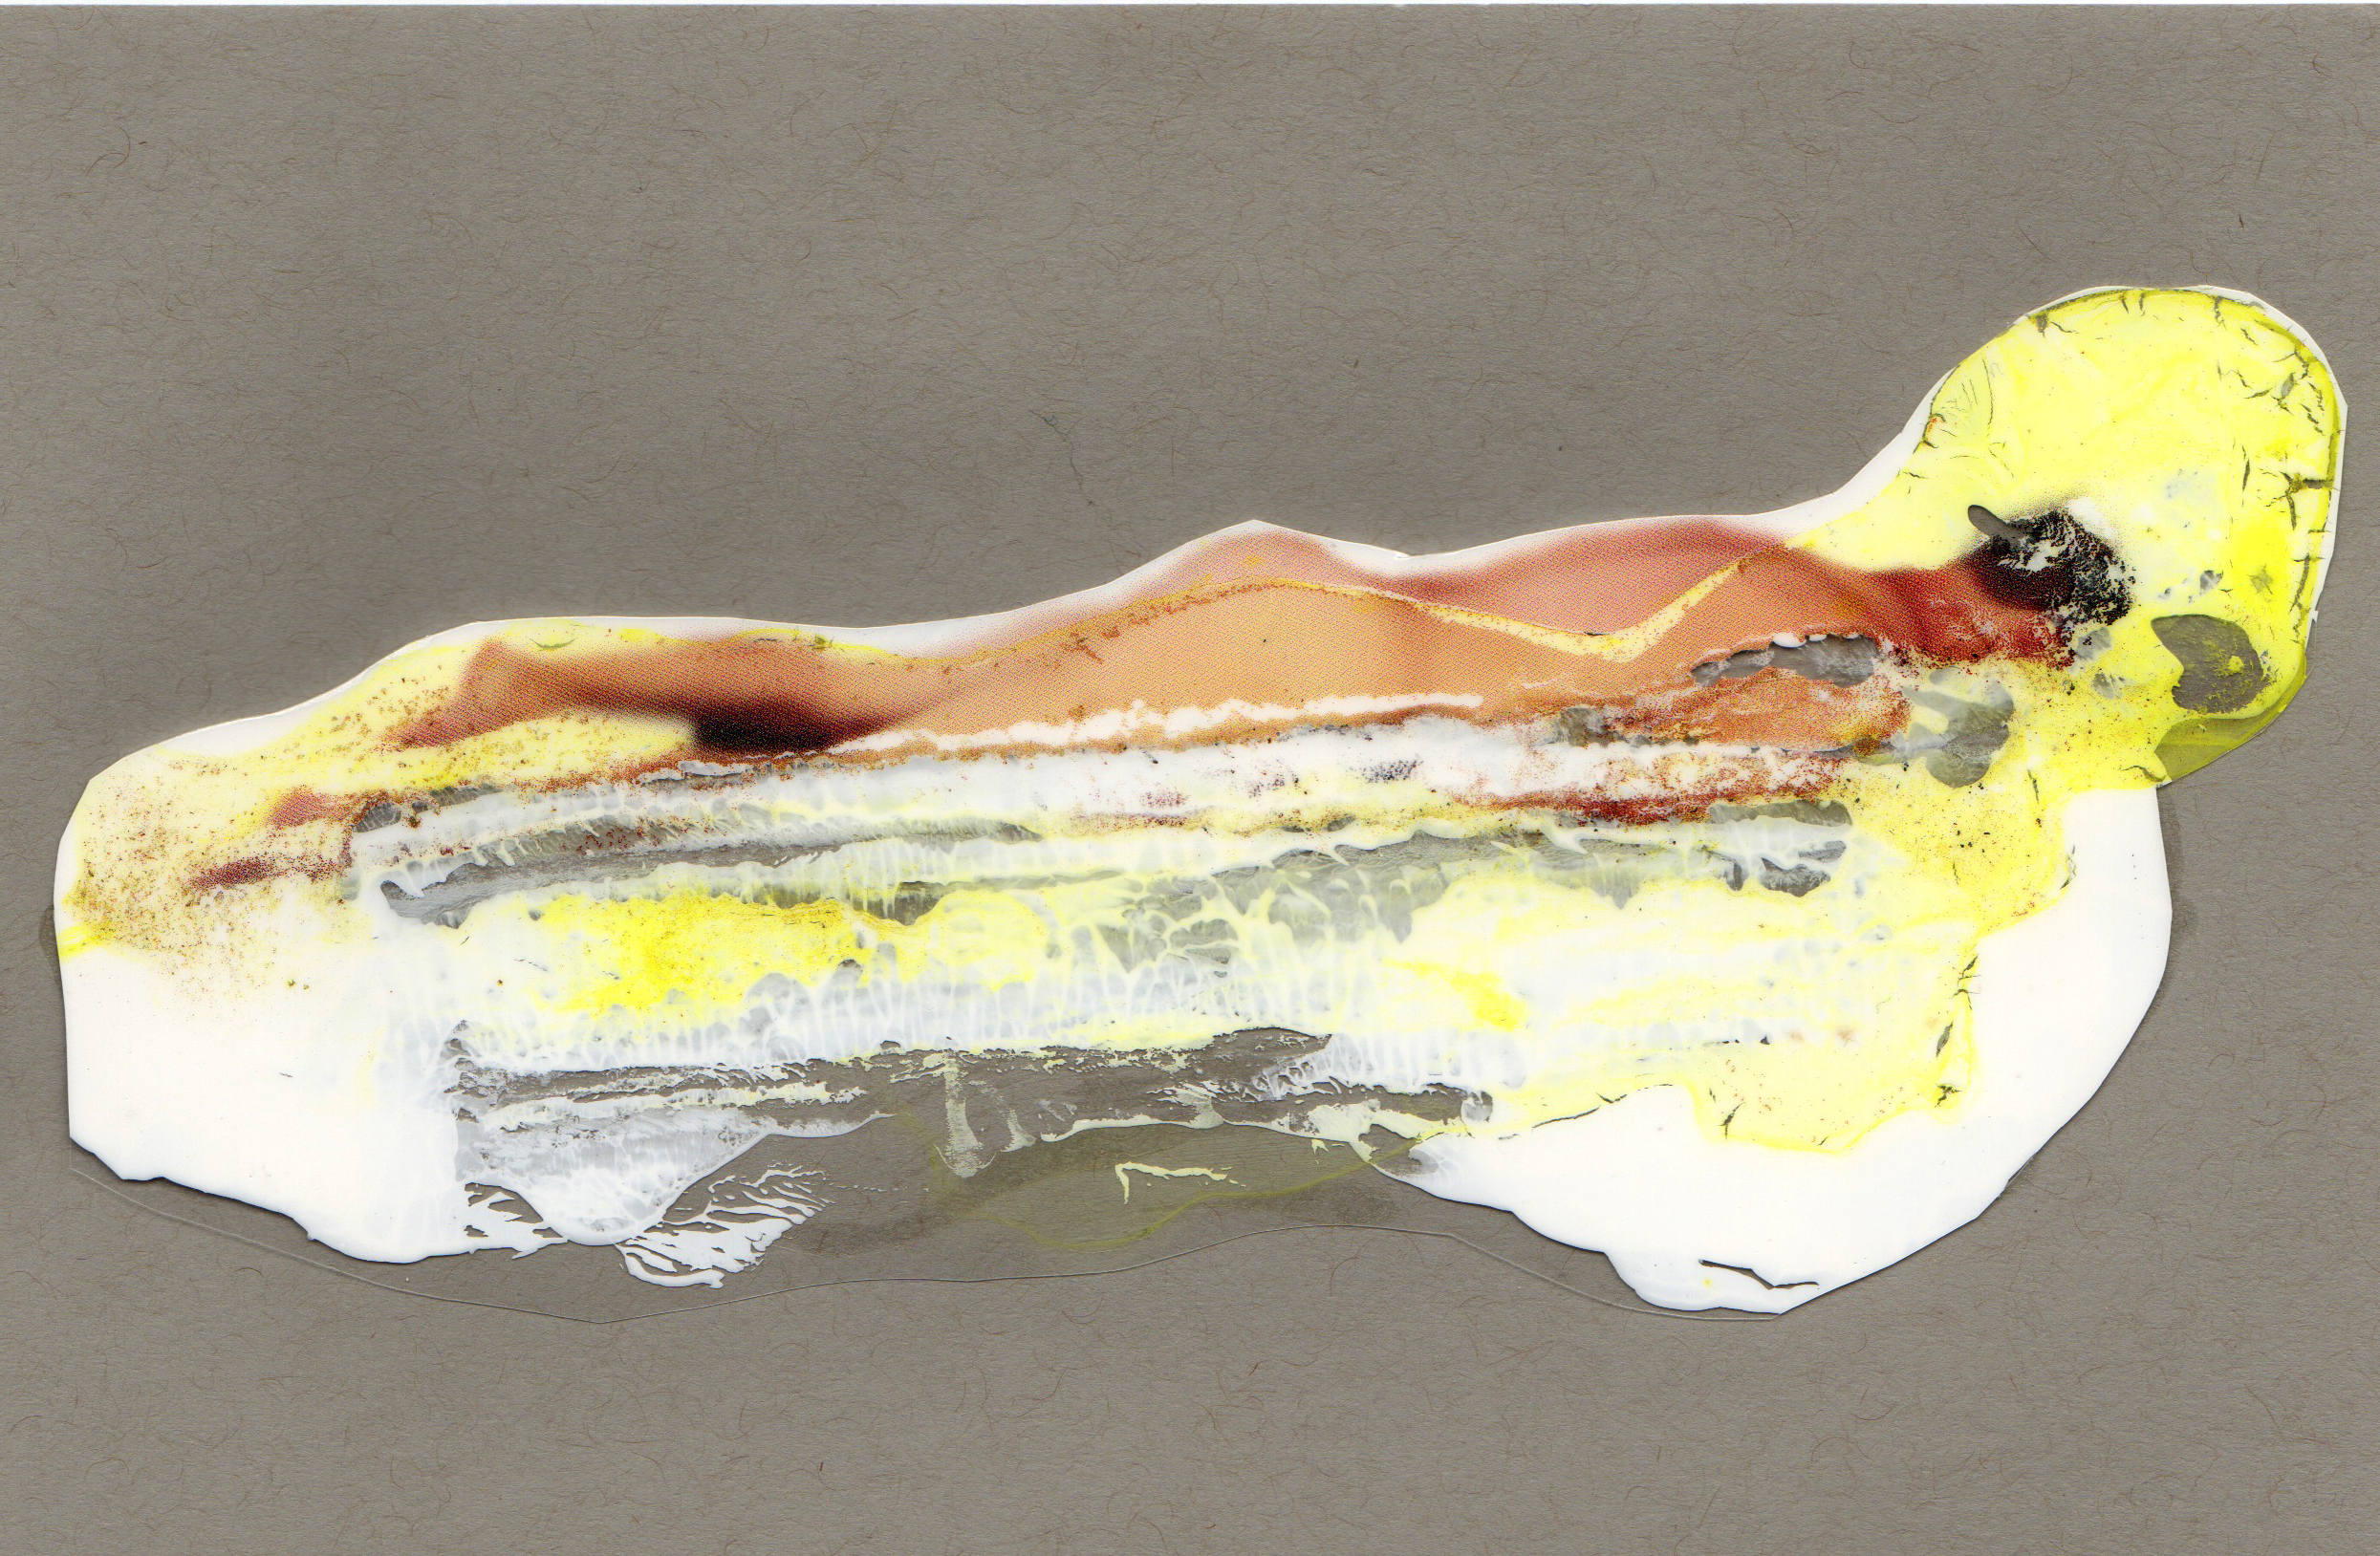 In The Memory River, 2014, paint transparency archival ink and paper, 8.5x5.5 inches